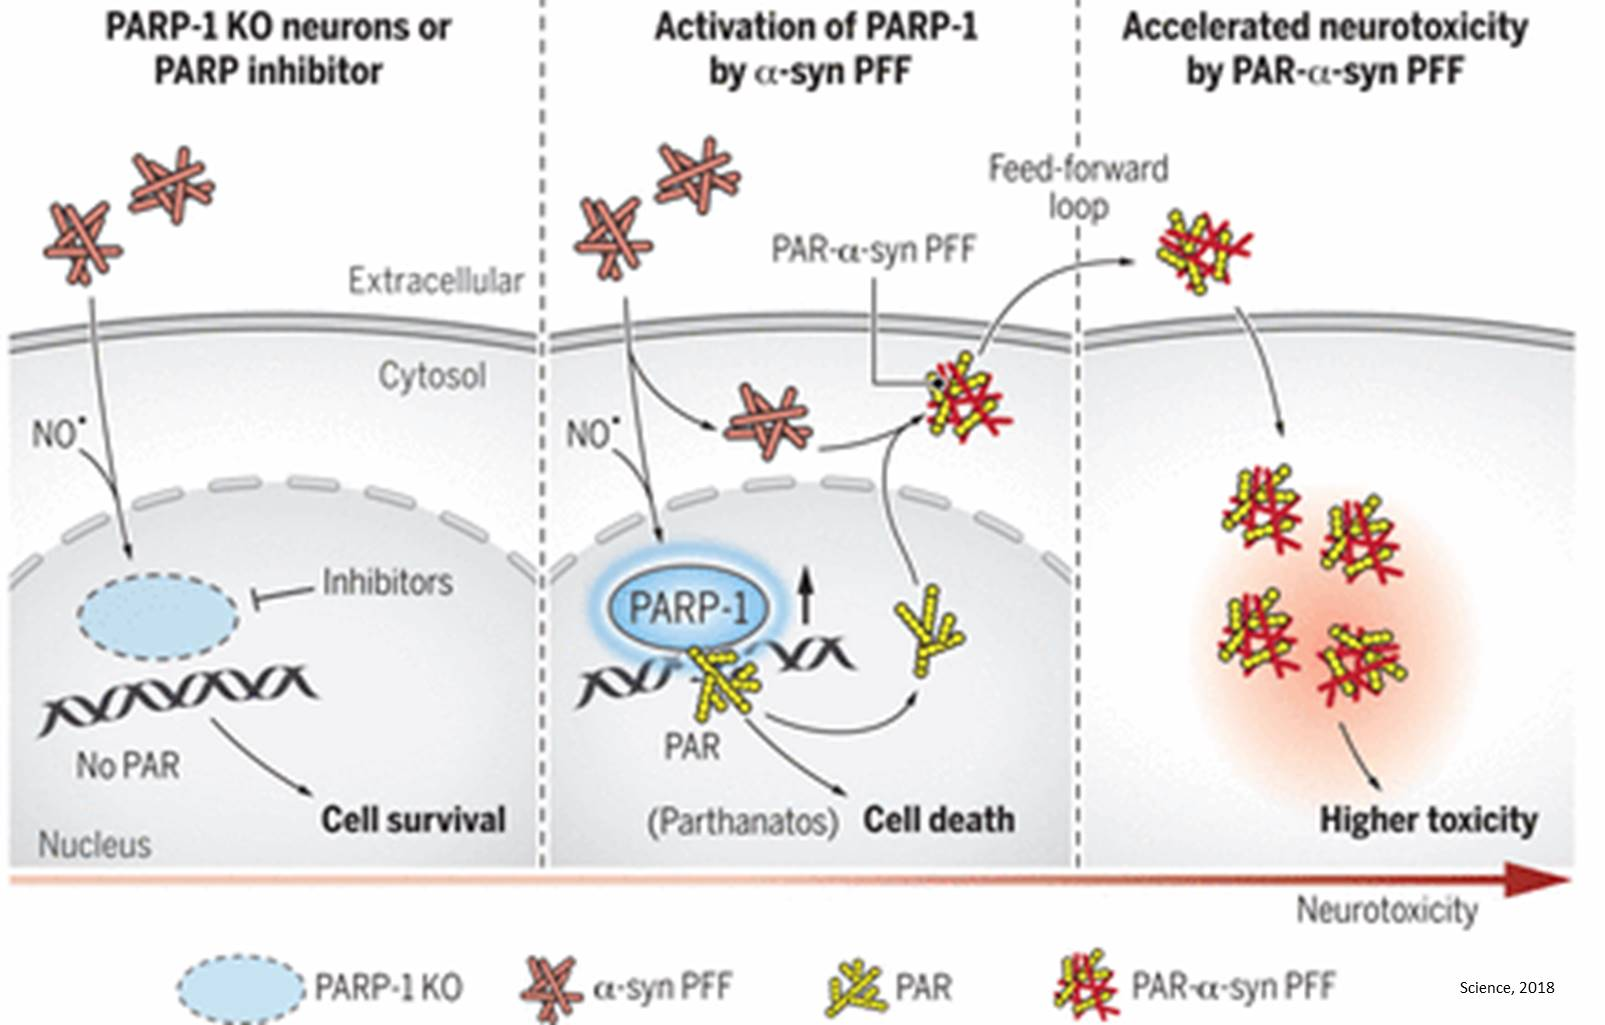 A key driver of nerve cell degradation in Parkinson's disease